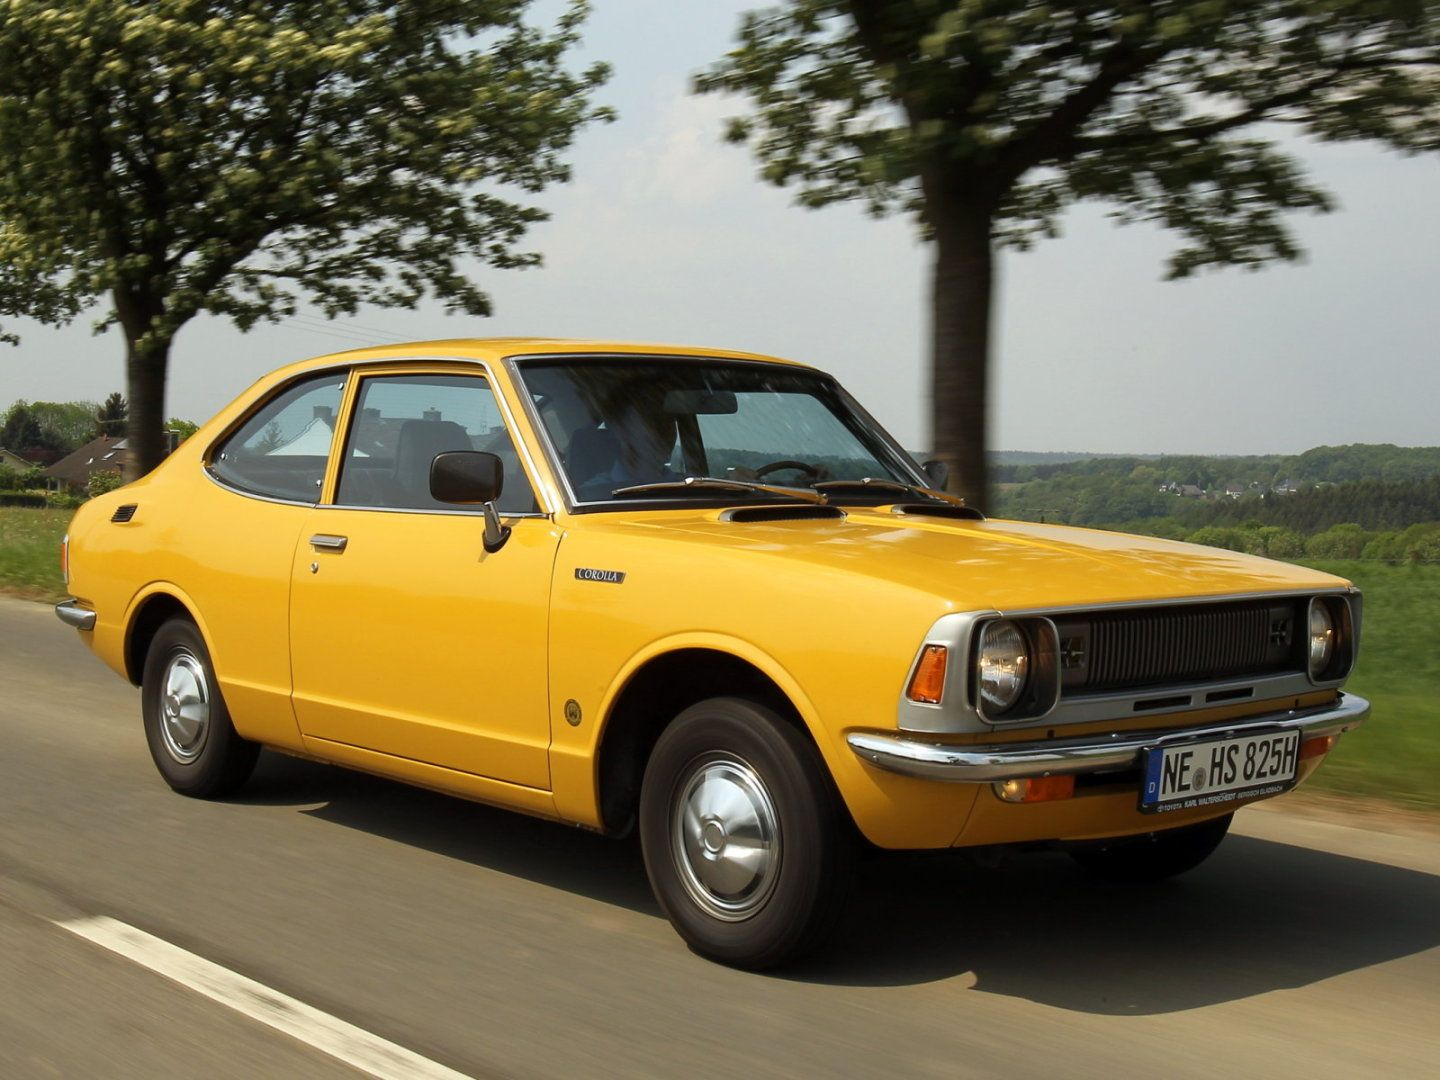 1970 S Datsun B210 Google Search With Images Toyota Corolla